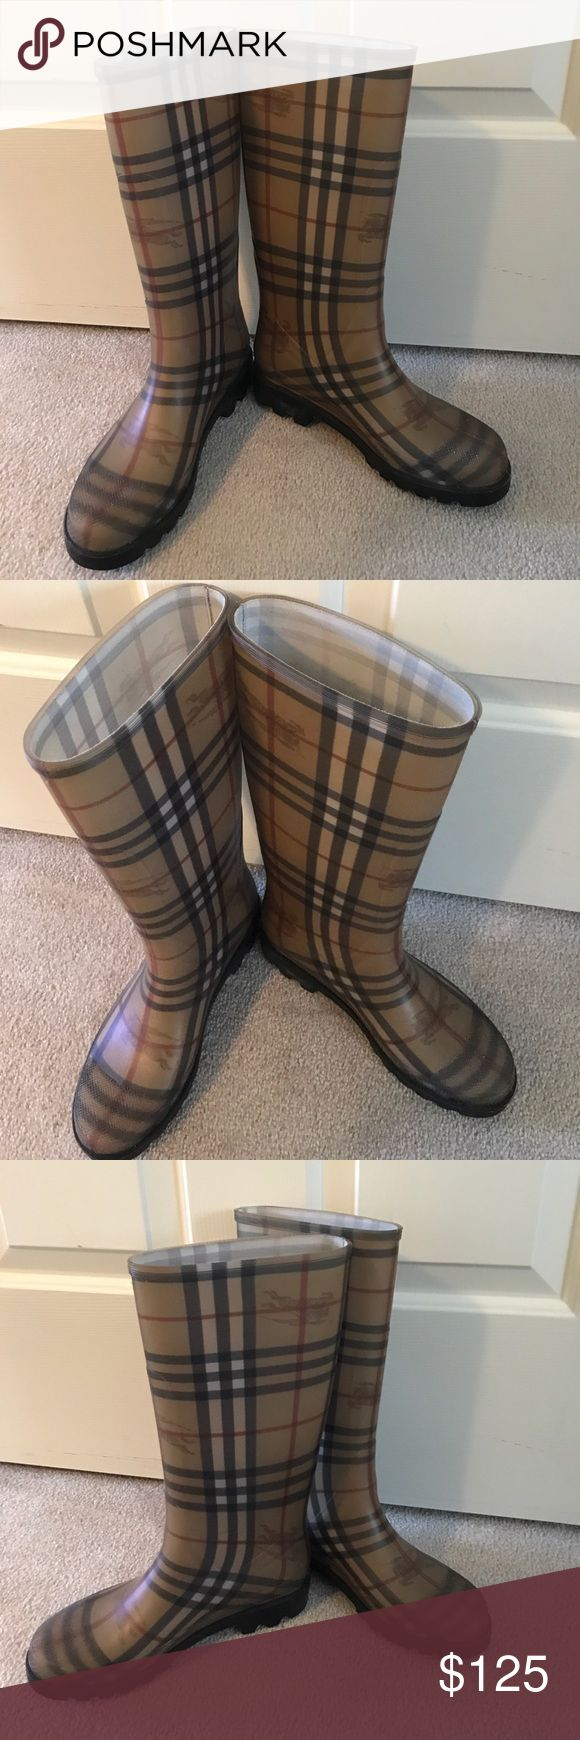 Burberry rain boots Authentic Burberry rain boots in excellent condition Burberry Shoes Winter & Rain Boots